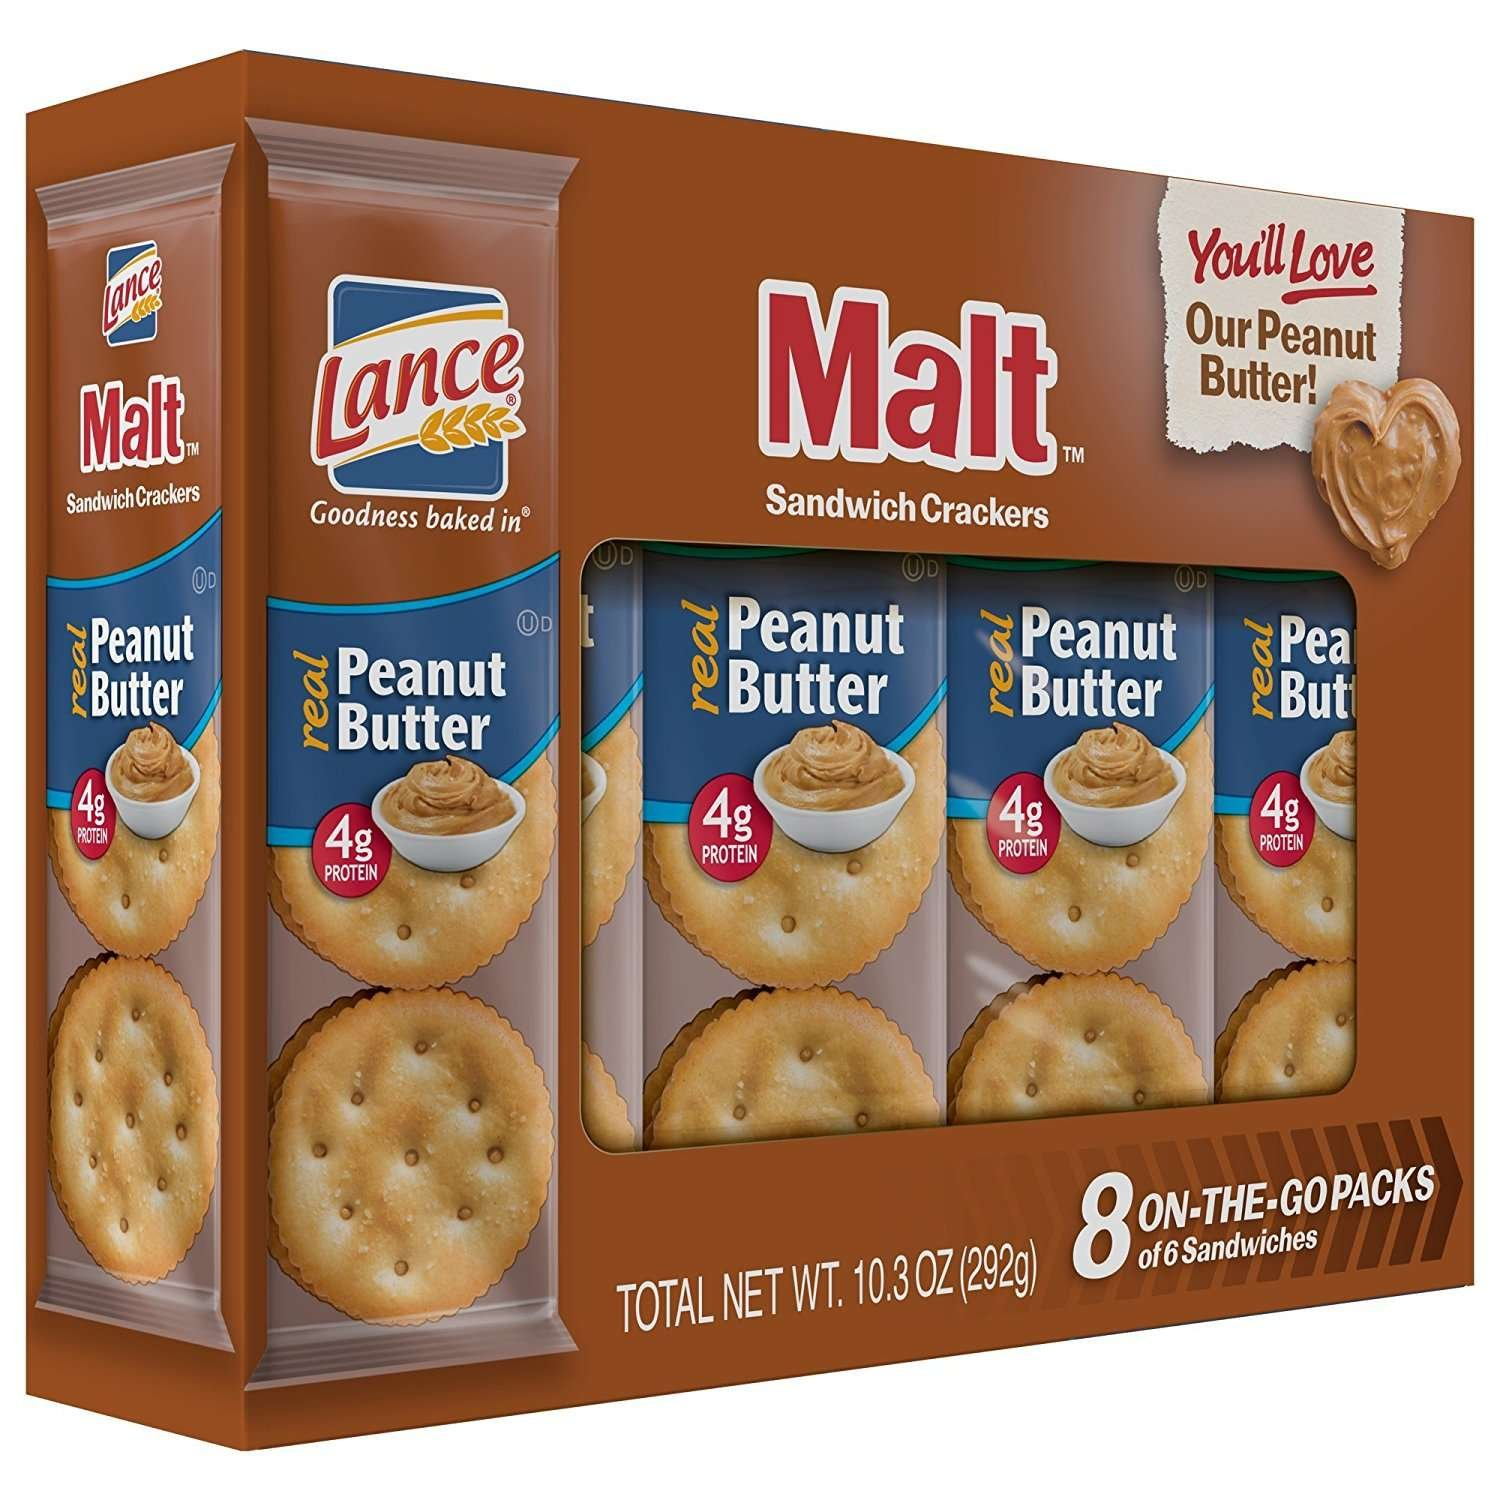 Lance Sandwich Crackers, Malt with Peanut Butter, 8-Count Boxes (Pack of 14) by Lance (Image #6)